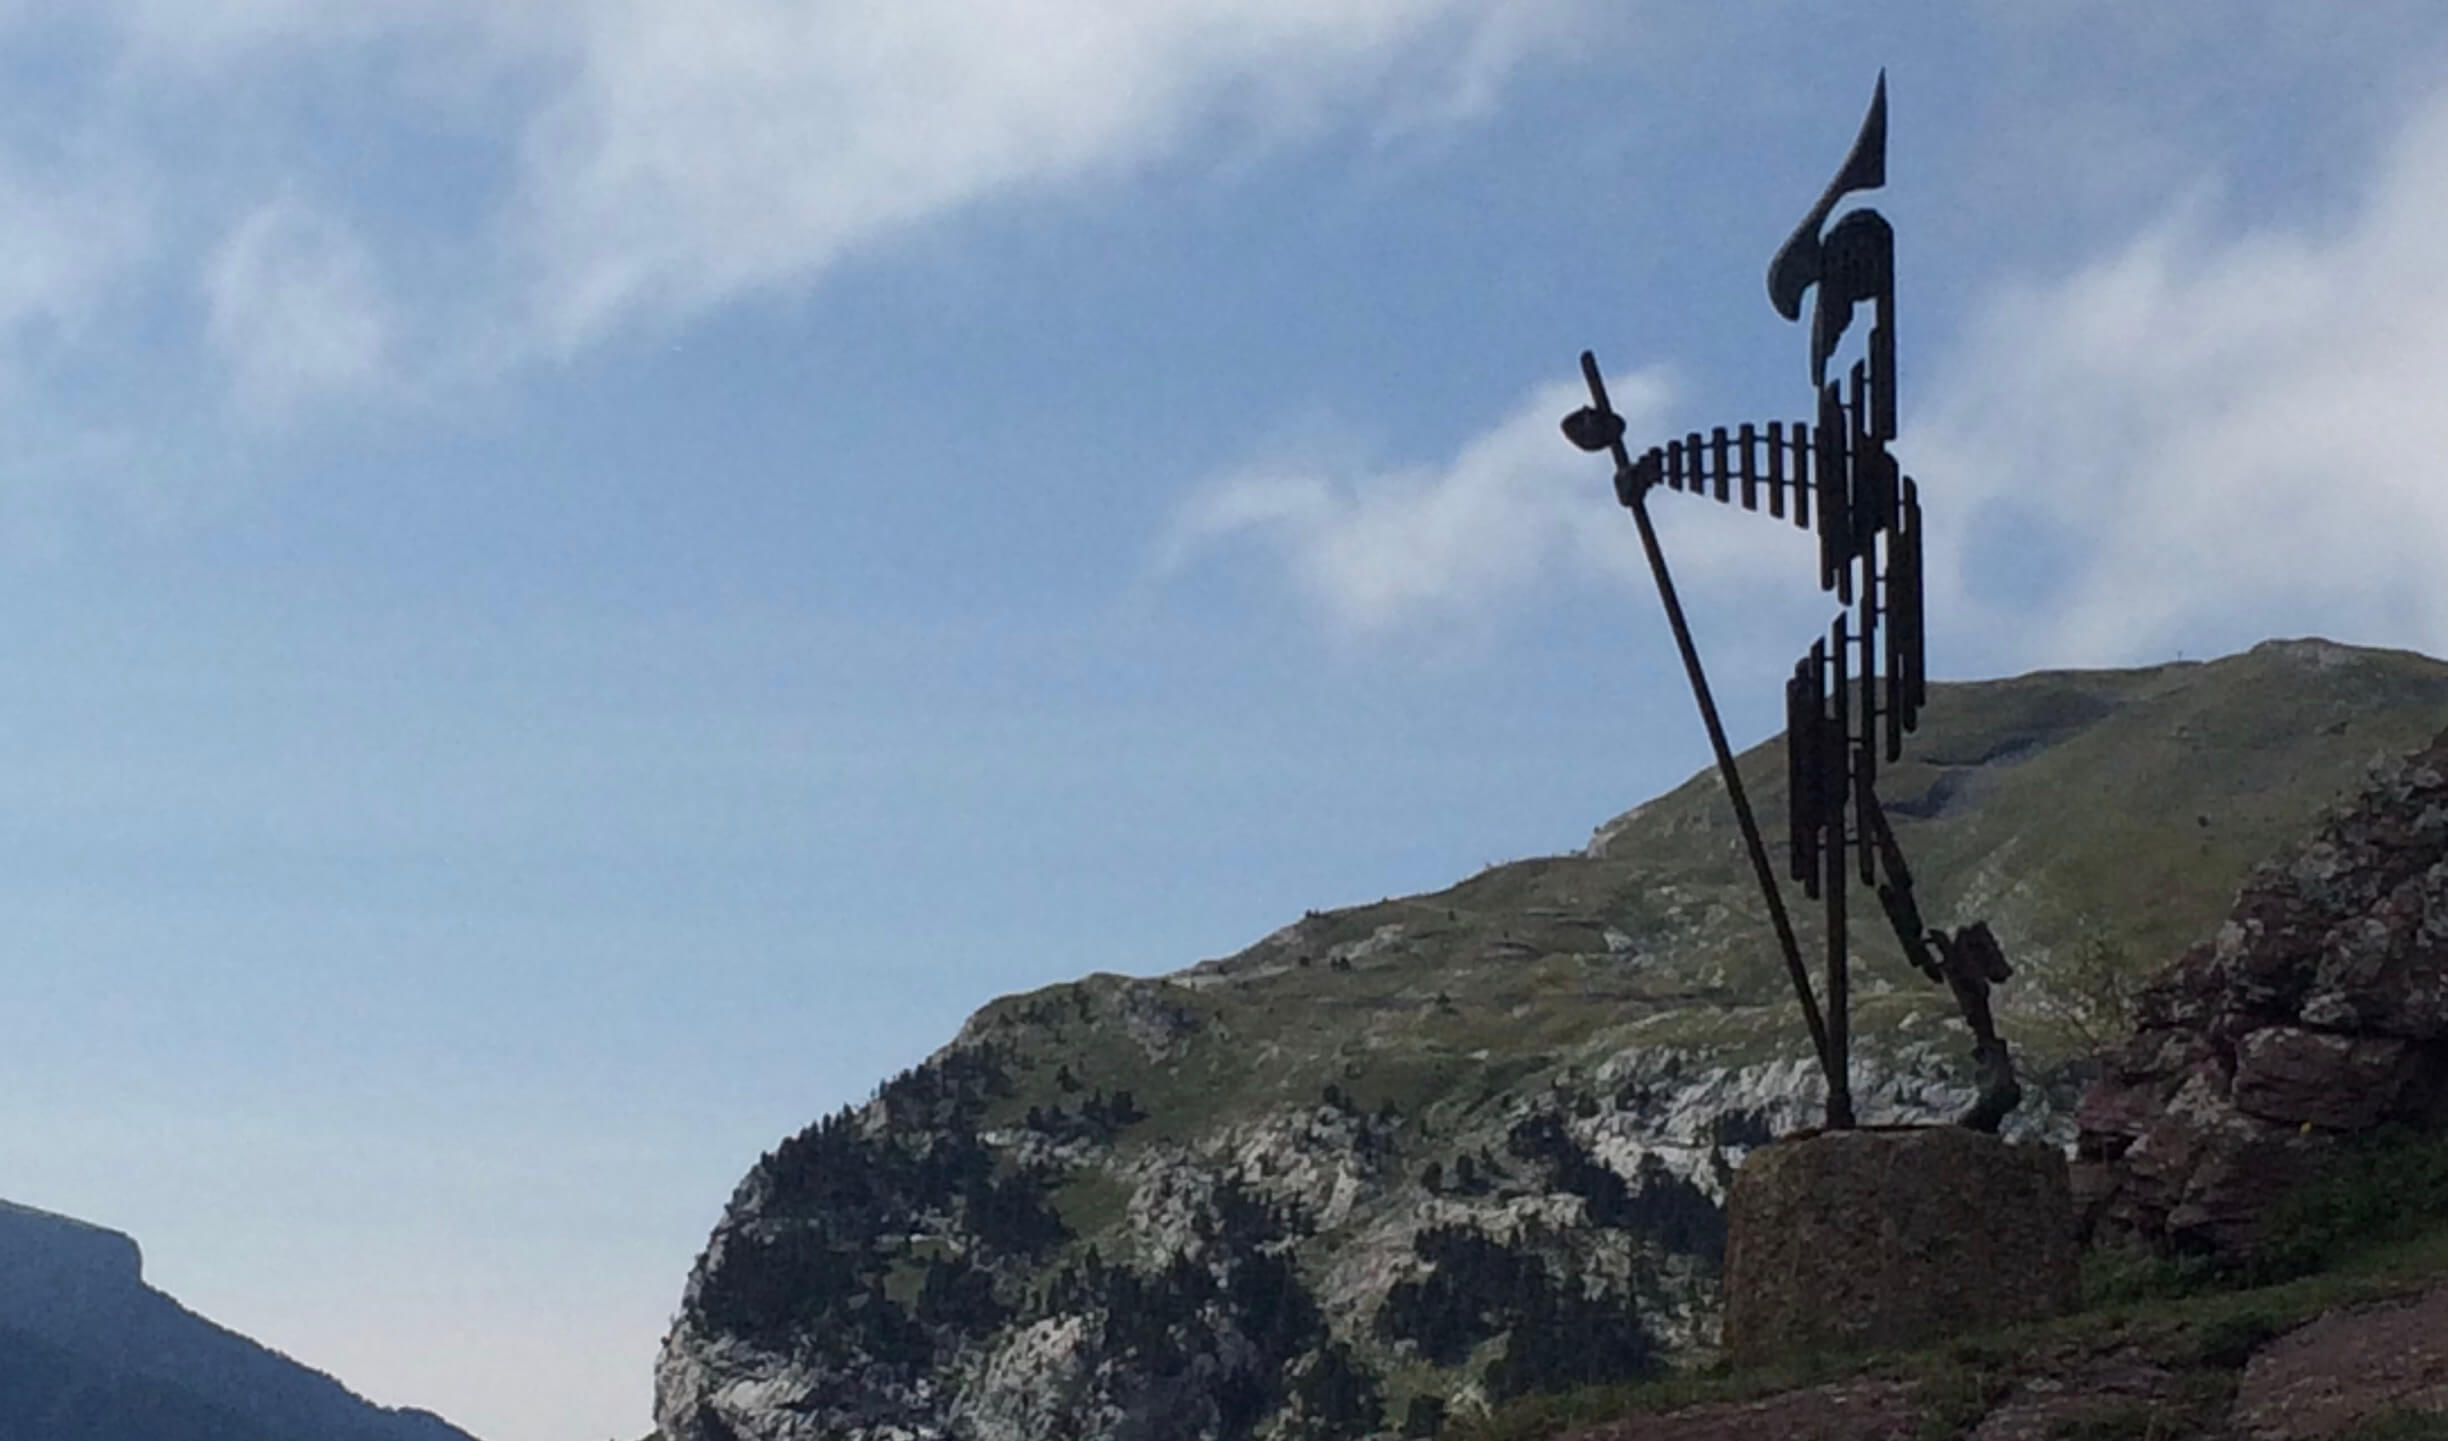 Sculpture of a pilgrim at Col du Somport with sky and mountains in the background